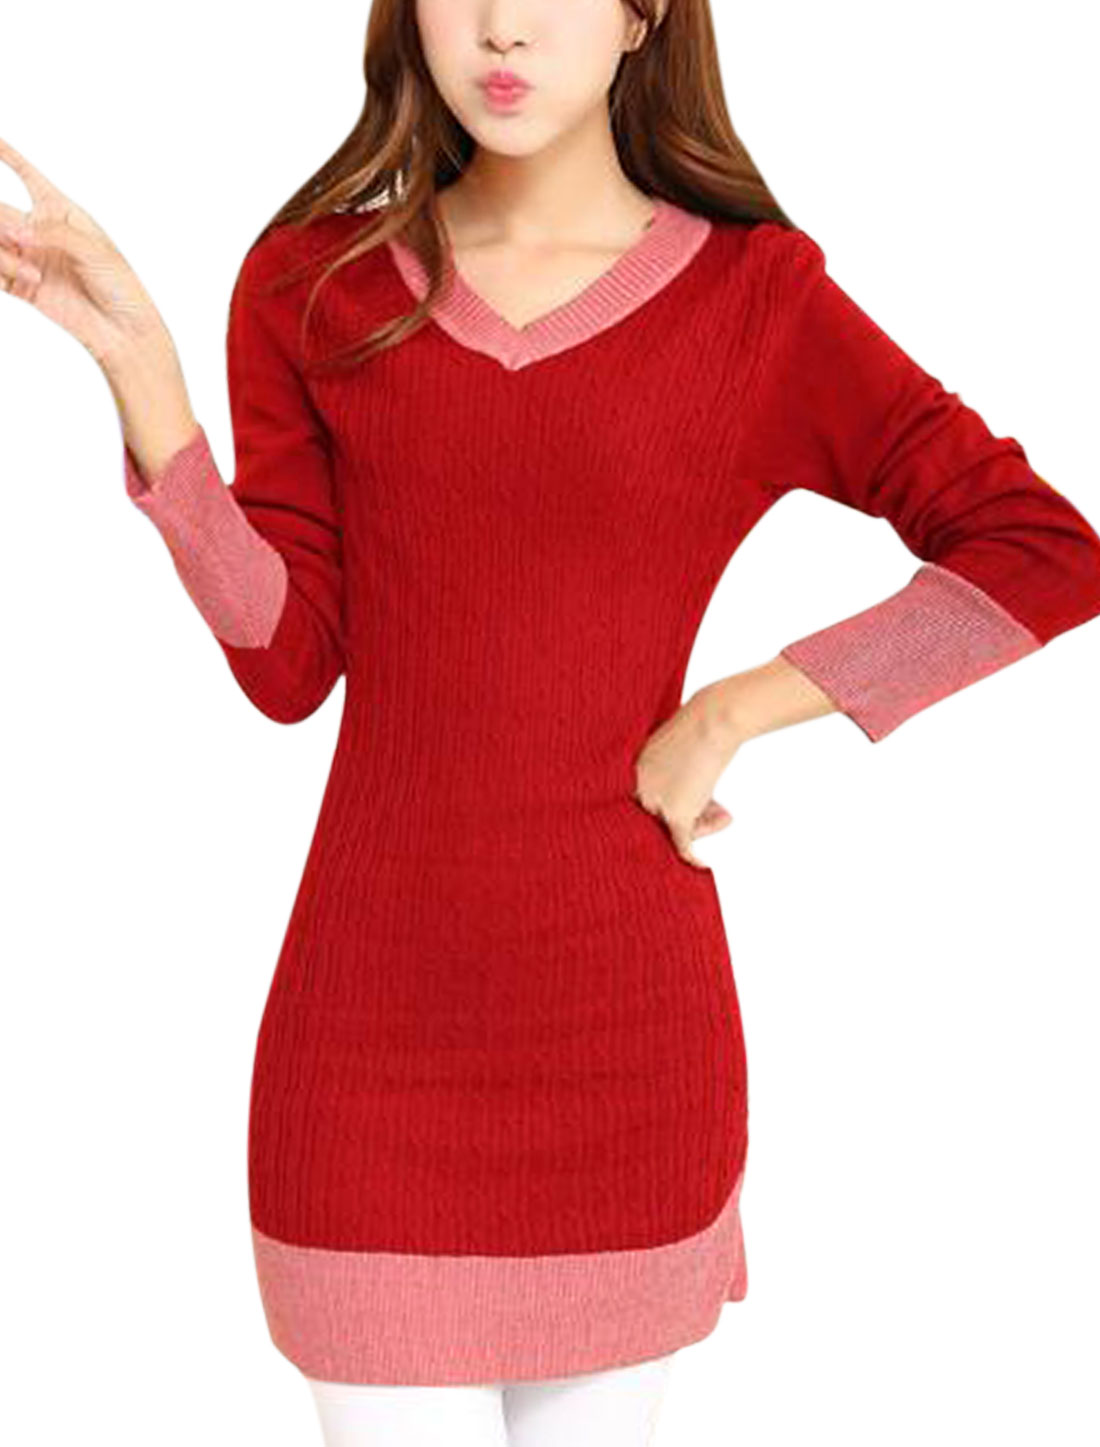 Ladies Warm Red Long Sleeves Contrast Color Slim Fit Knitted Dress S